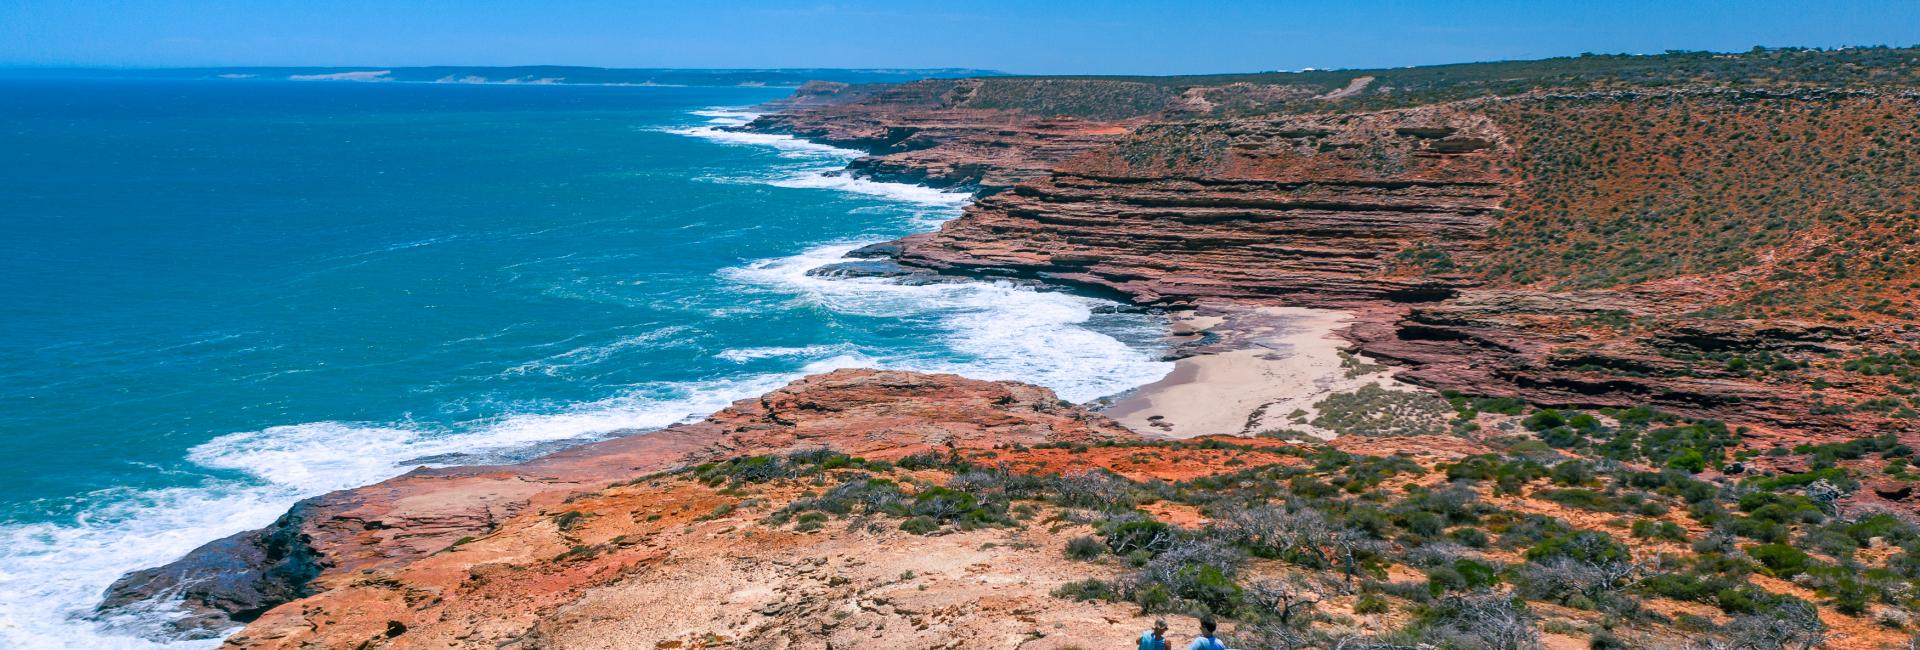 Kalbarri Coastal Cliffs lookout